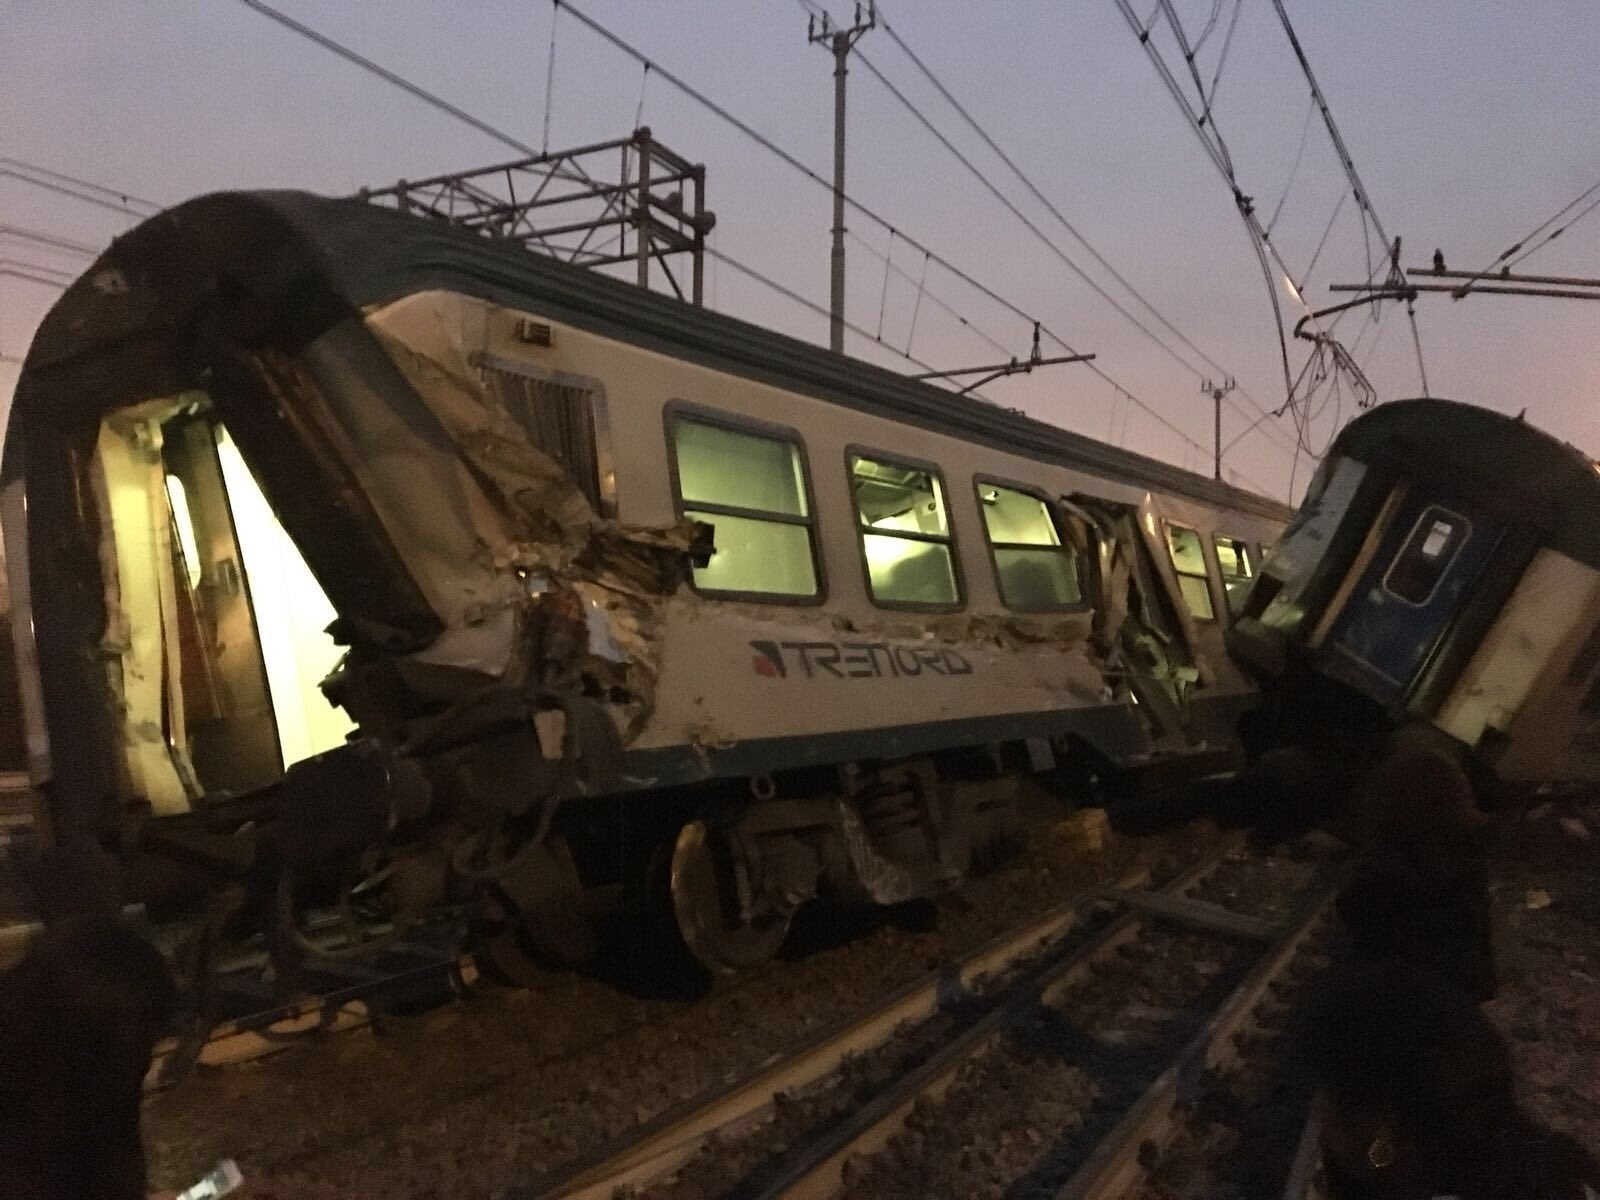 Train crash near Milan, Italy, leaves at least two dead after derailment